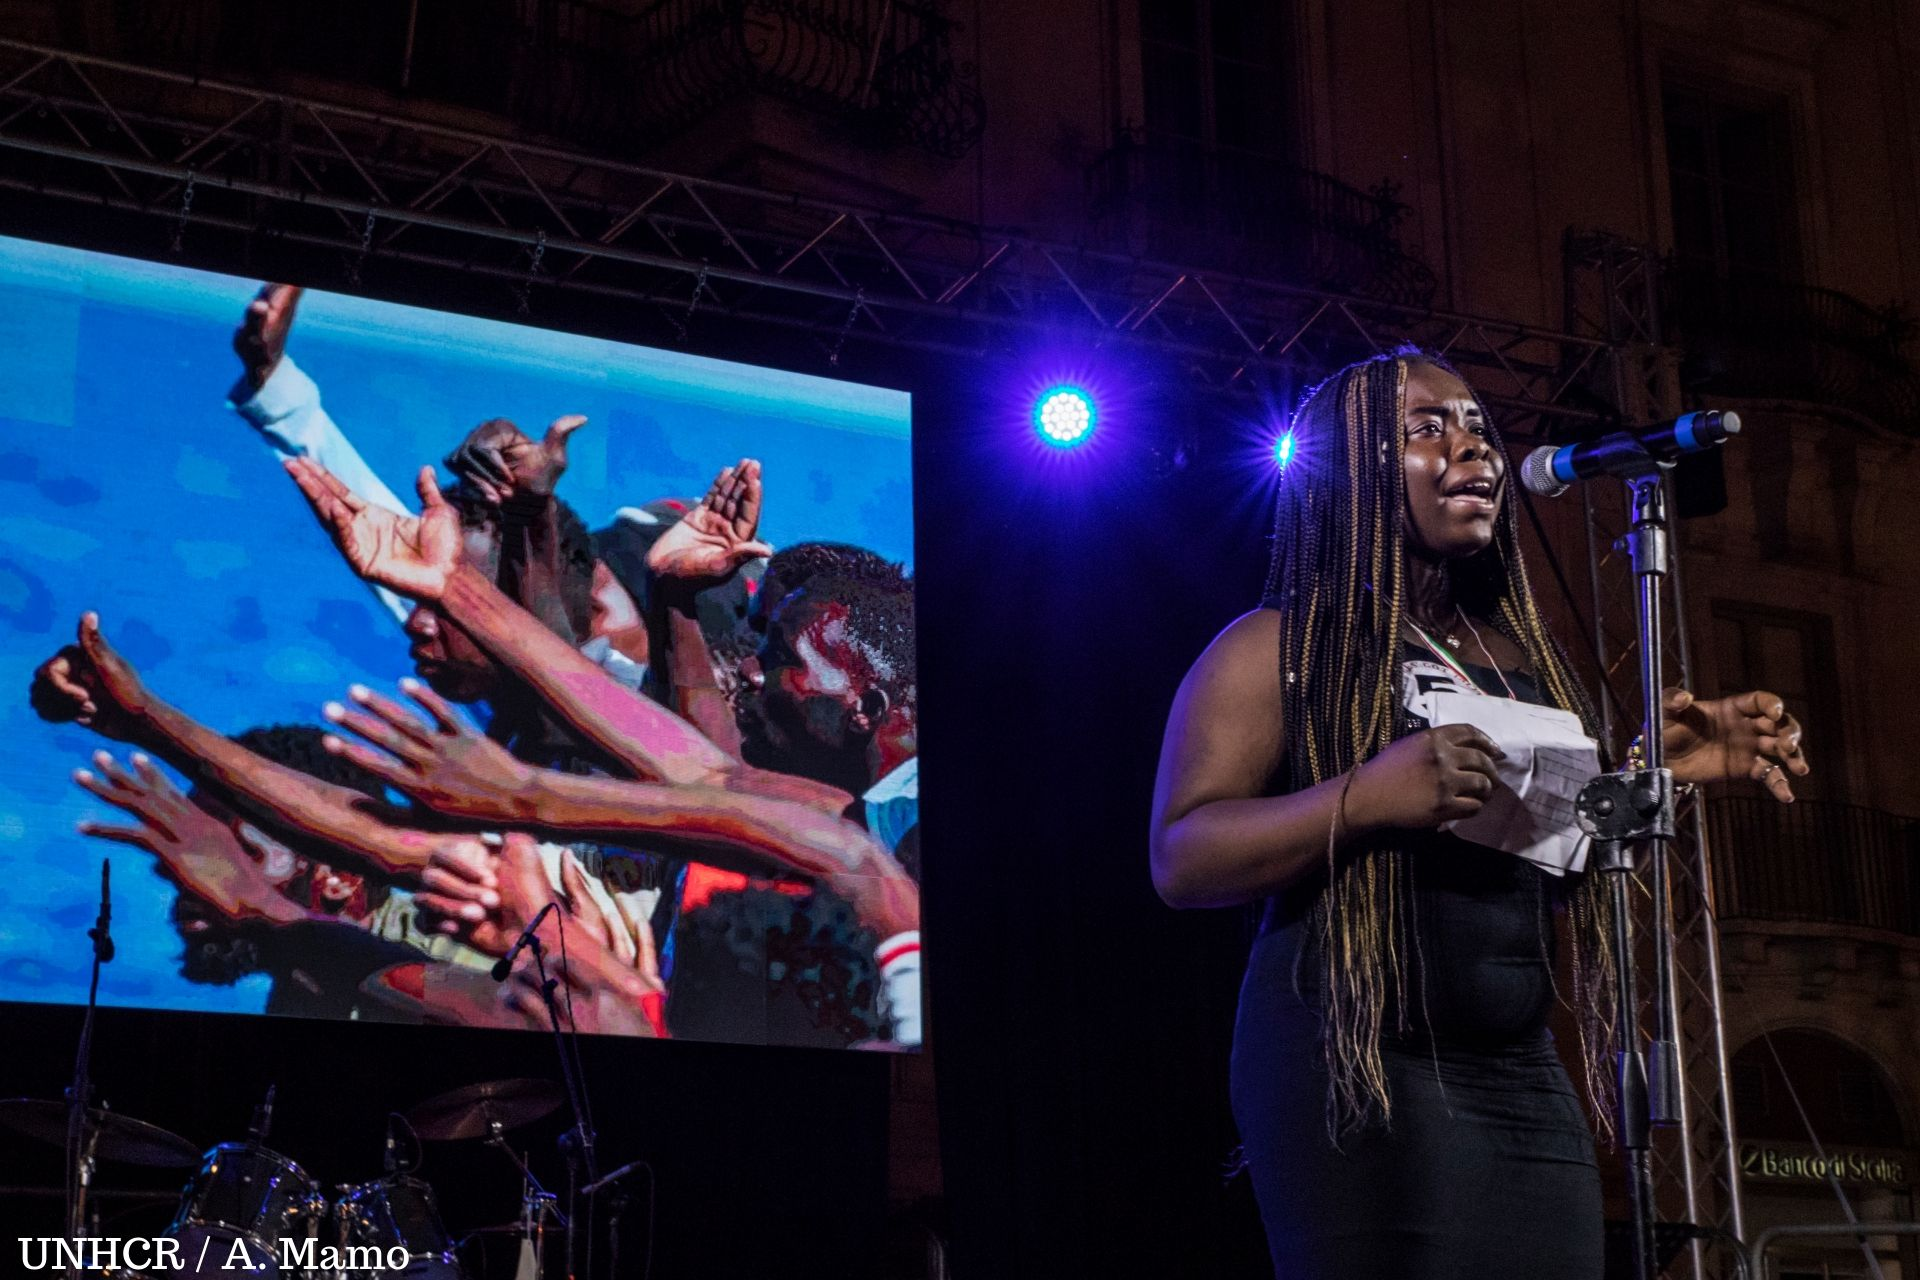 REFUGEES GOT TALENT: VINCE LA POETESSA HANNAH IMORDI